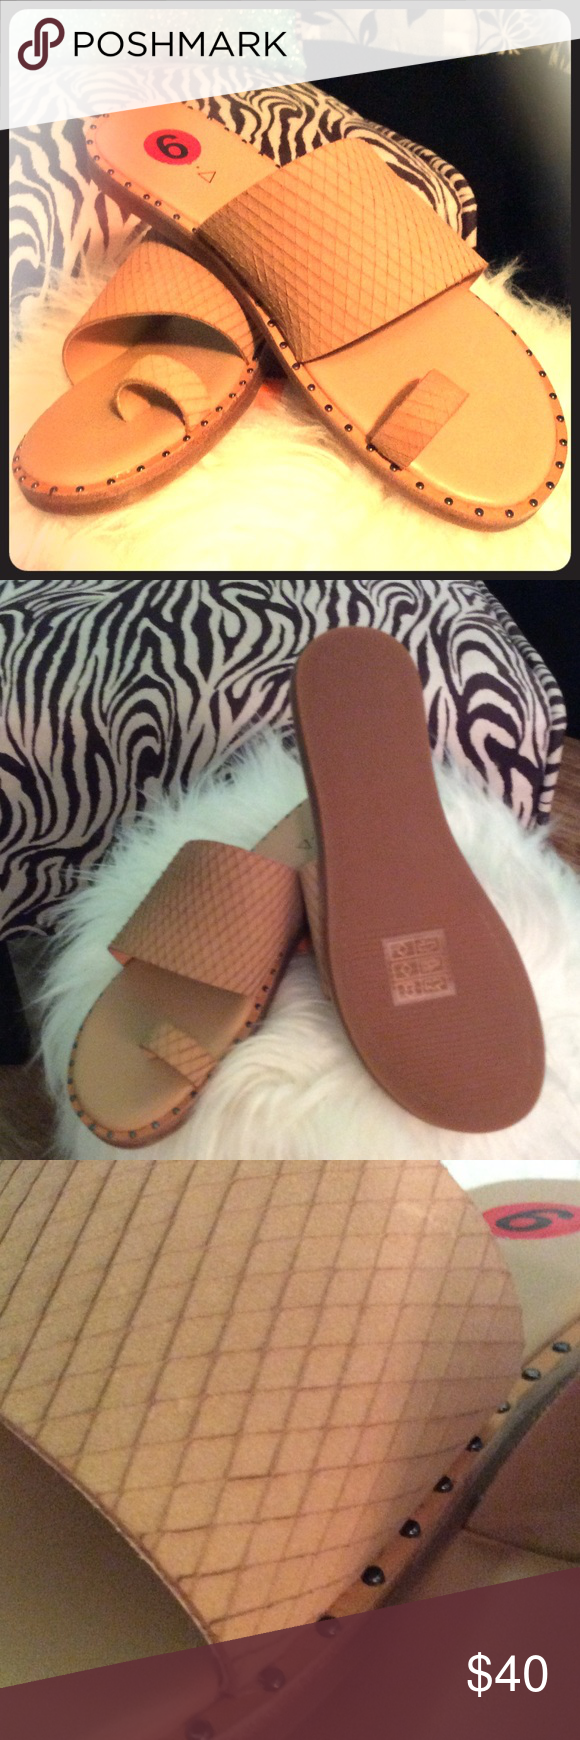 NWT Kelsi Dagger Size 6 NWT Kelsi Dagger Brooklyn size 6, camel color beautiful detailing on leather. Comfortable sandal. $40 Kelsi Dagger Shoes Sandals